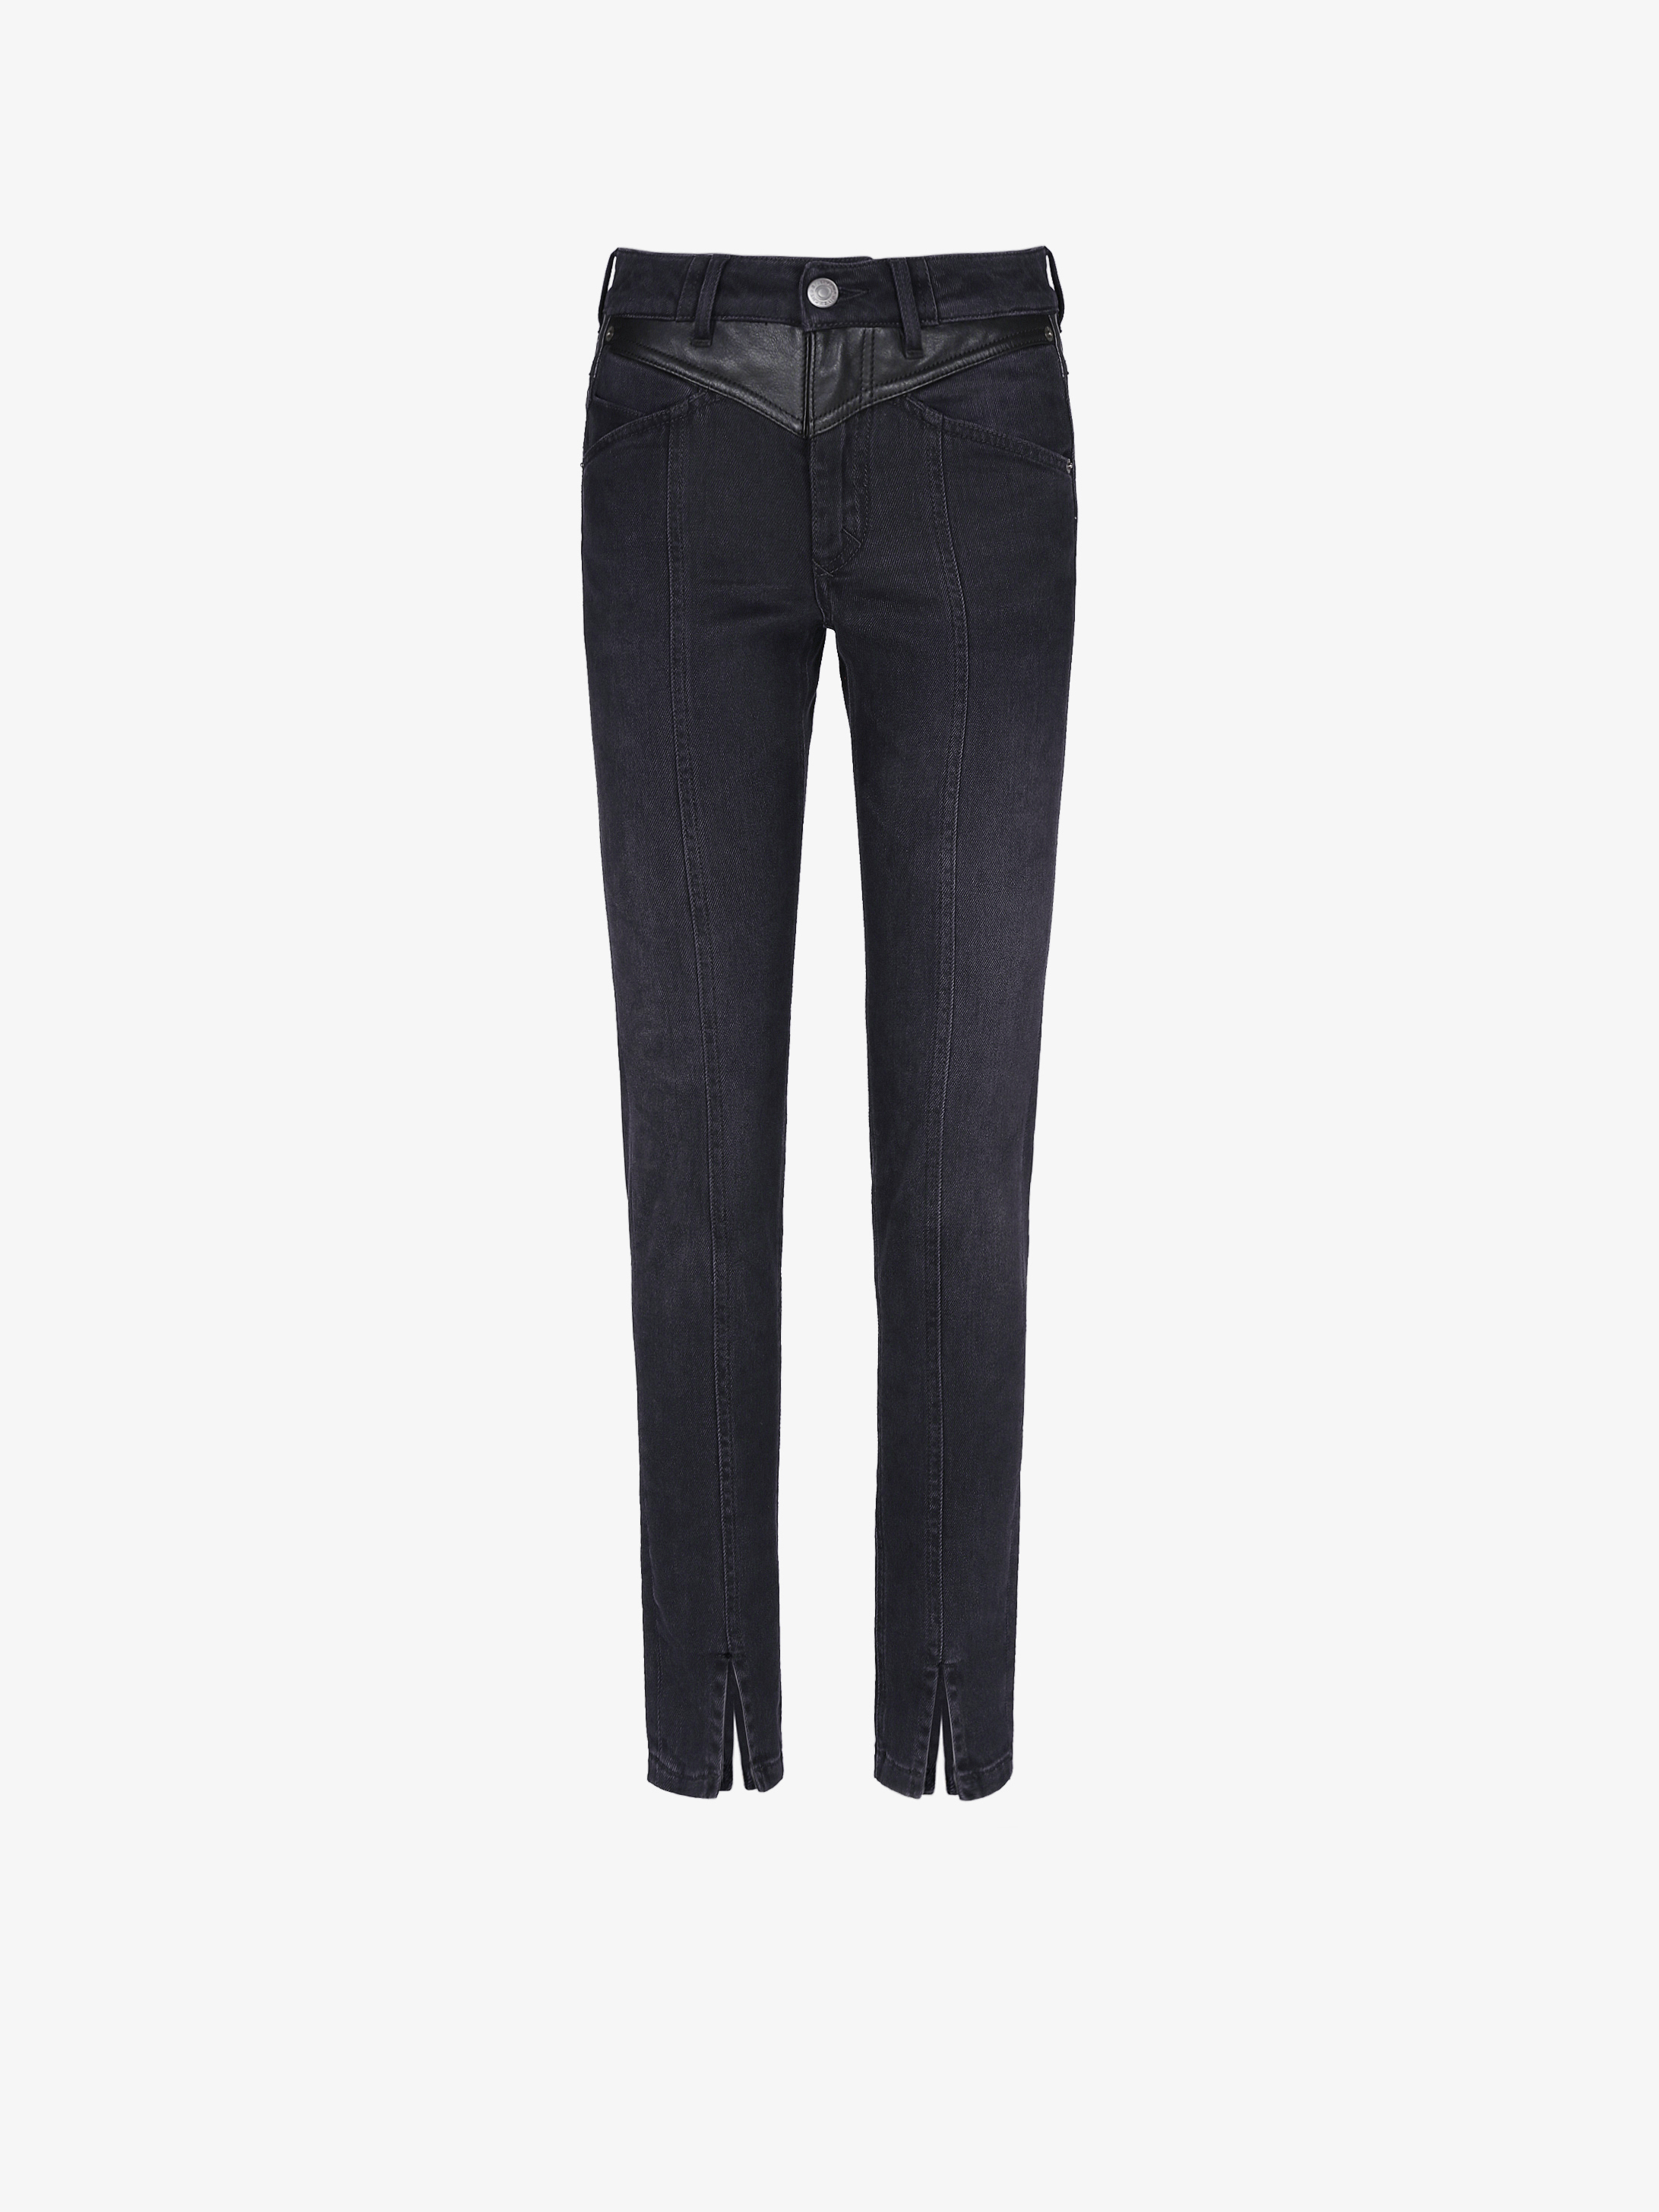 Skinny denim pants with leather details